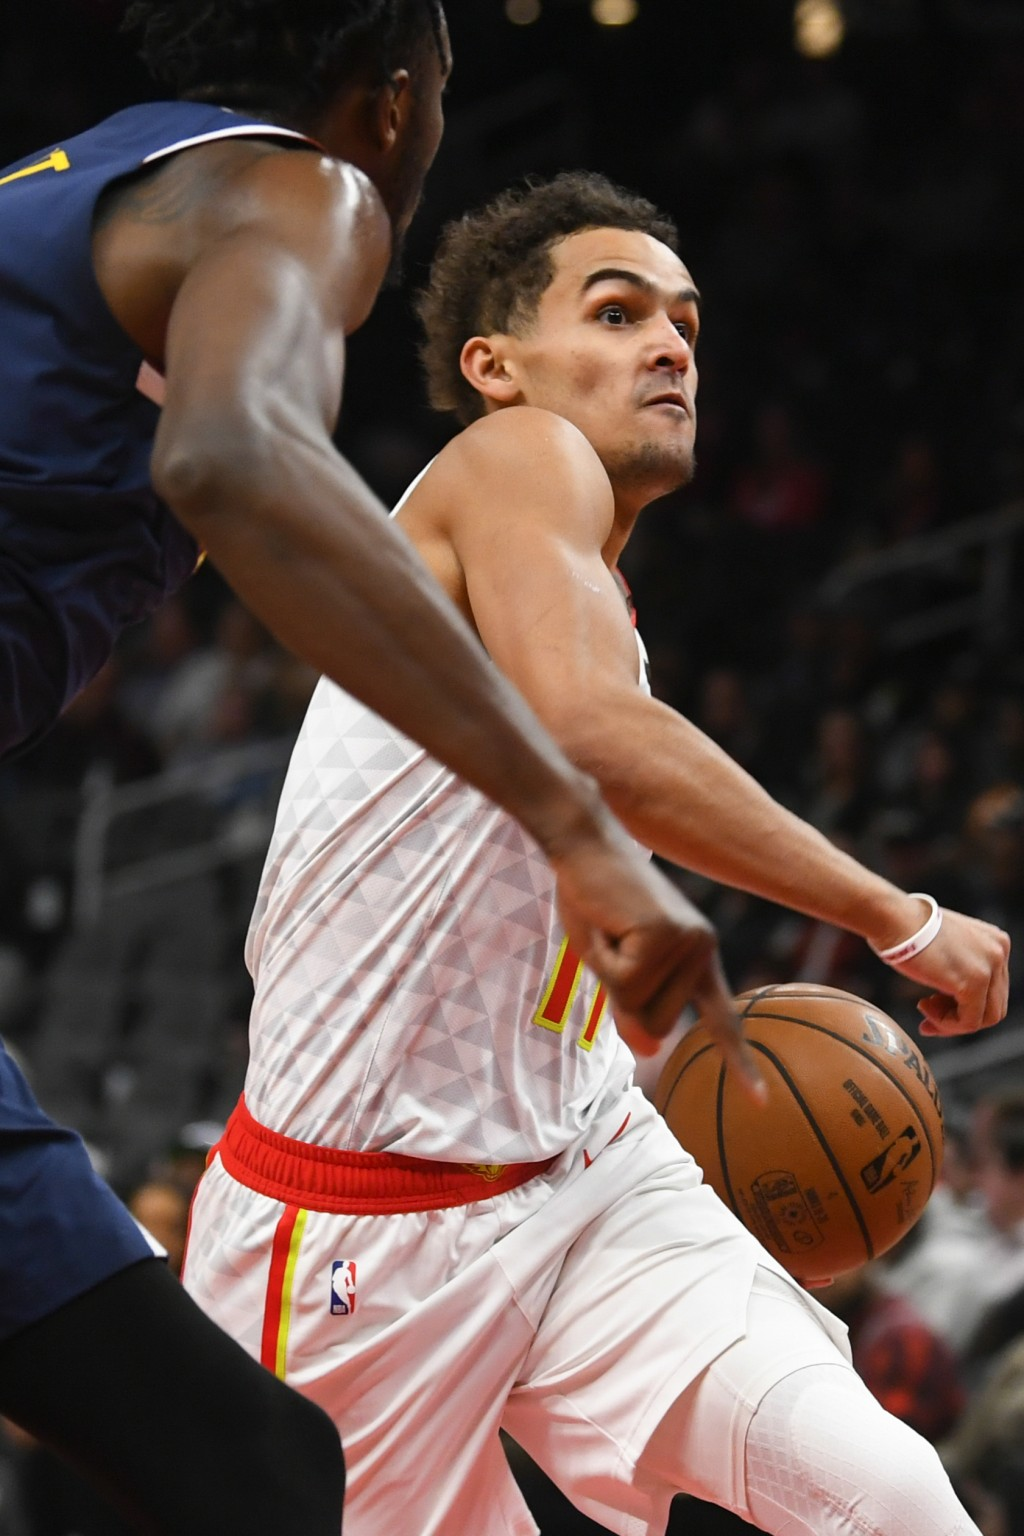 Atlanta Hawks guard Trae Young, right, drives the lane as Denver Nuggets forward Jerami Grant, left, defends during an NBA basketball game Monday, Jan...